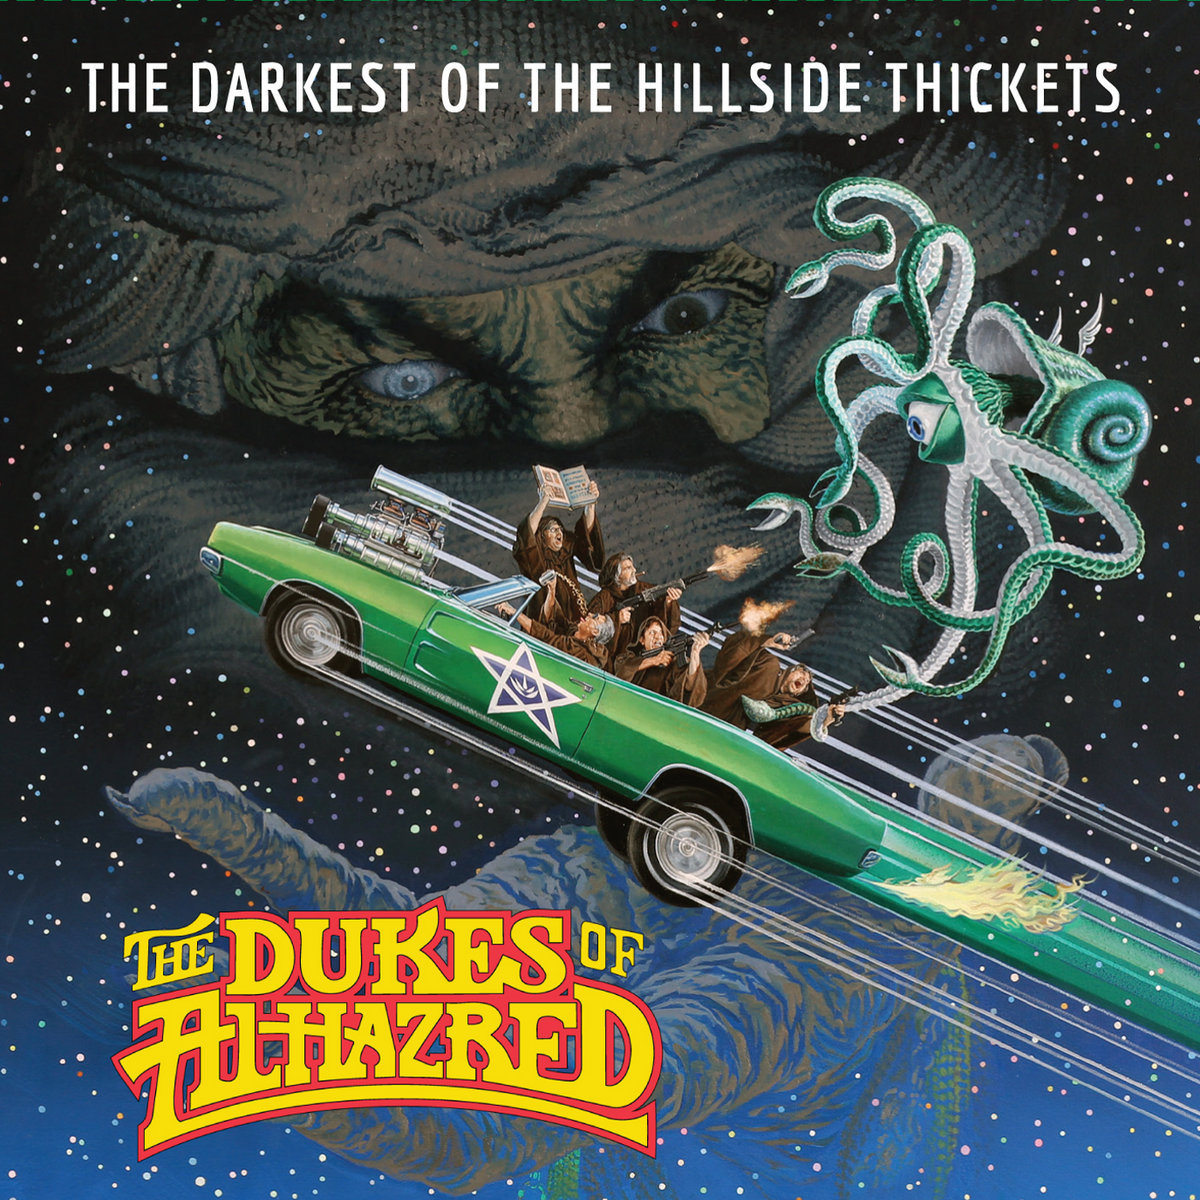 the dukes of alhazred the darkest of the hillside thickets